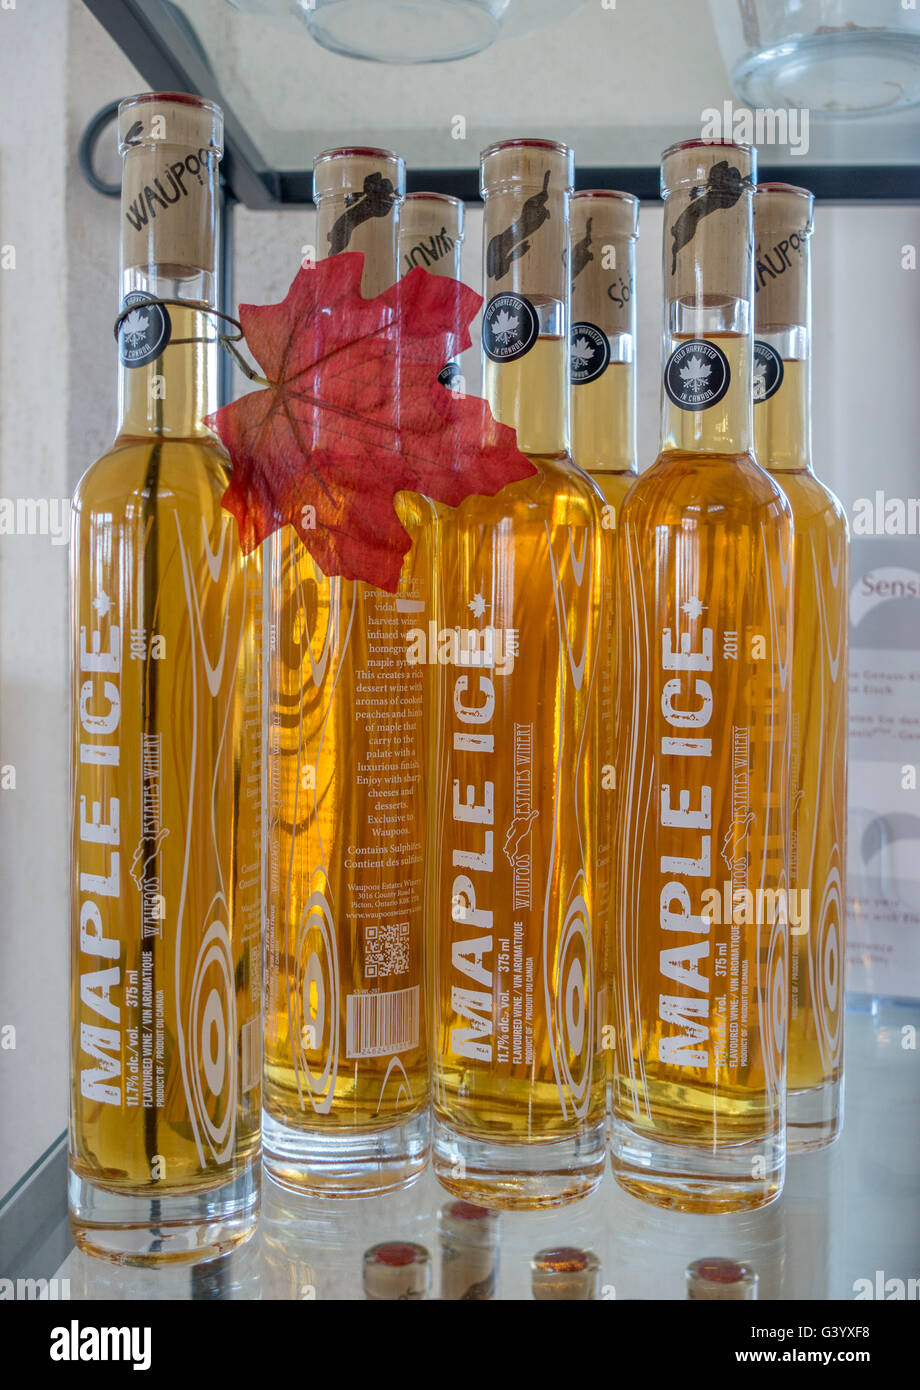 waupoos-winery-maple-ice-wine-bottles-fo